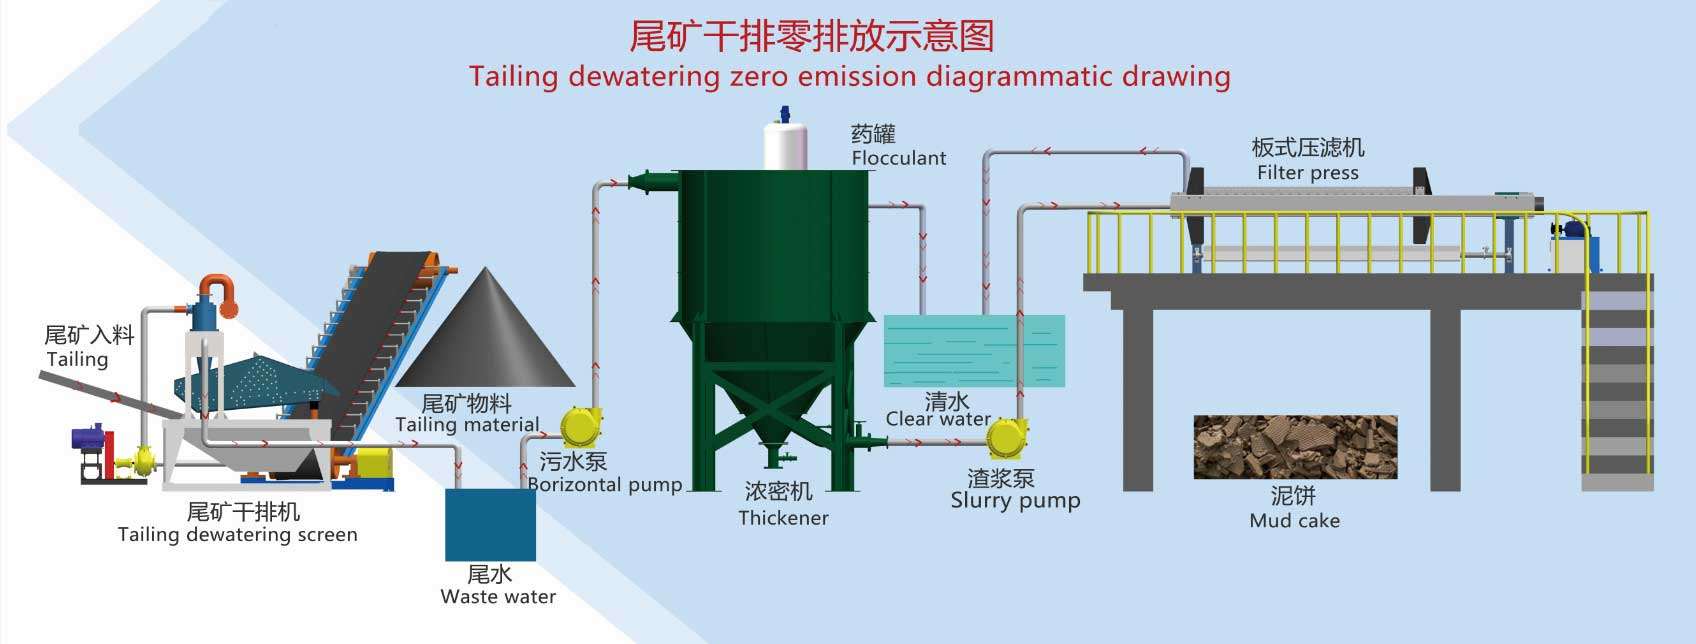 Tailing Dewatering zero emission system